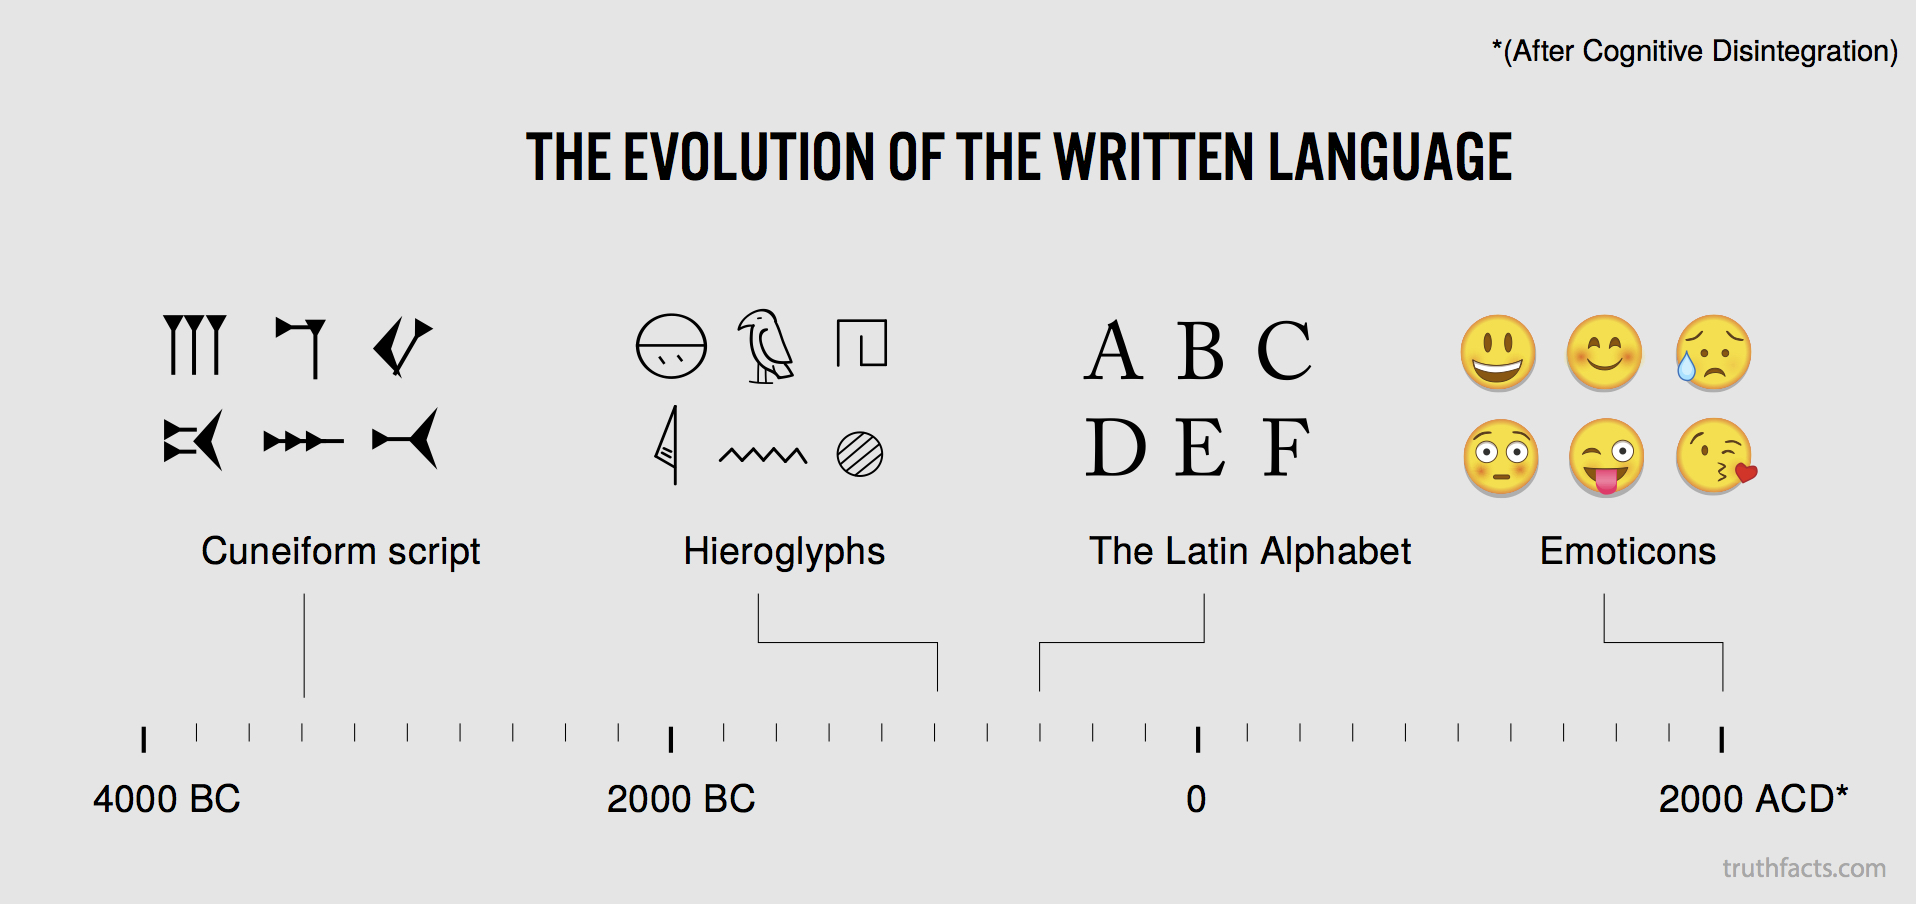 The evolution of the written language